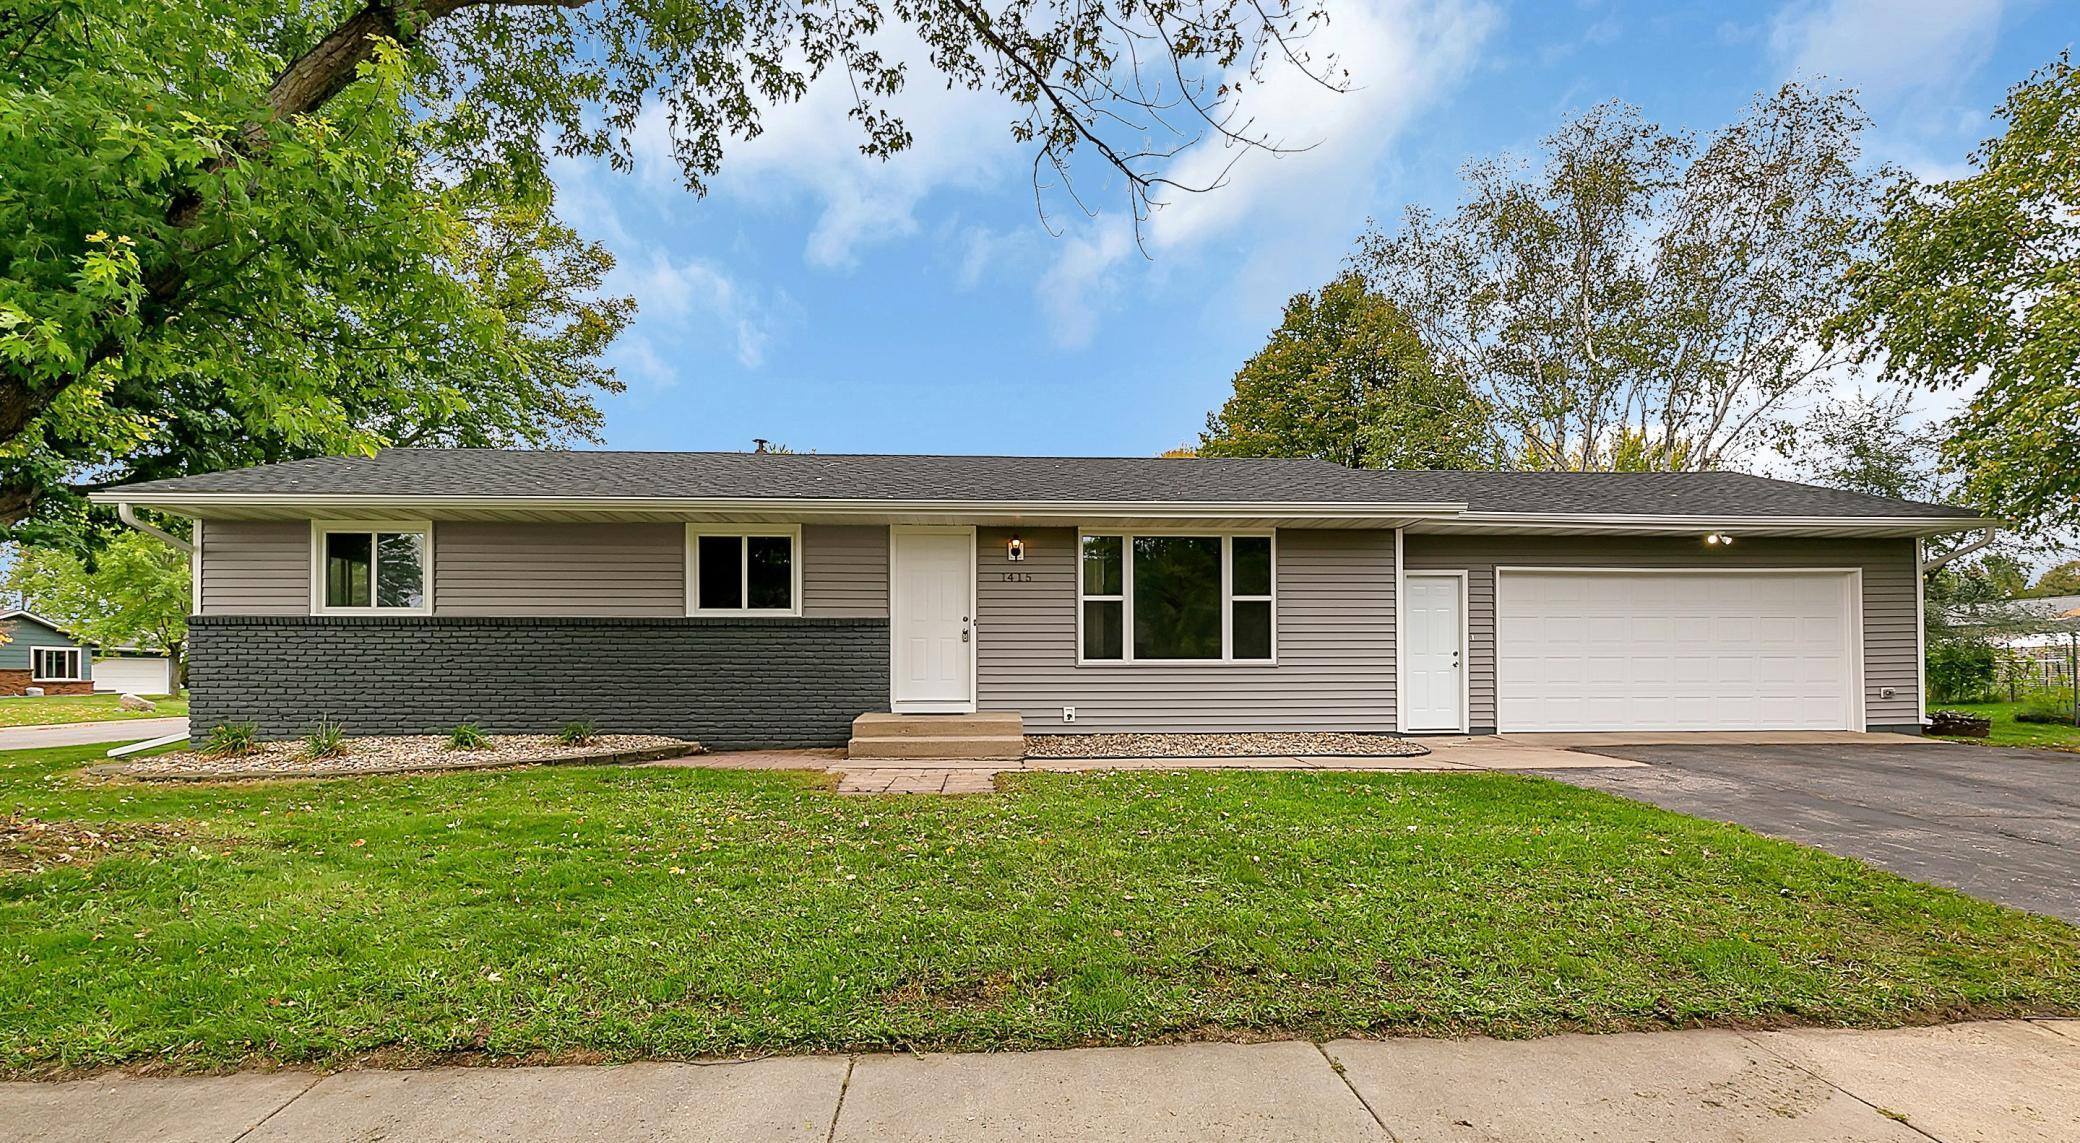 Opportunities like this do not come up very often: this large rambler in a great north side location sits on a corner lot with mature trees near North Jr. High and was significantly remodeled in 2018/2019 with all new siding, shingles, main floor windows, attic insulation, flooring, paint, kitchen cabinets and more. It also offers newer central air, updated egress windows, and a 24x24 ft fully sheetrocked garage. The main floor offers knockdown ceilings, plenty of large windows and has three bedrooms, a full bath with dual vanities and tile tub surround, a spacious living room and beautiful kitchen with dark stained poplar cabinets and stainless steel appliances. The basement has an enormous family room, fourth bedroom (with an easy spot to add a fifth bedroom if you desire), another bath and a finished laundry room with extra storage in the cedar closet. Enjoy all of these updates in a solid neighborhood convenient to HWY 15.